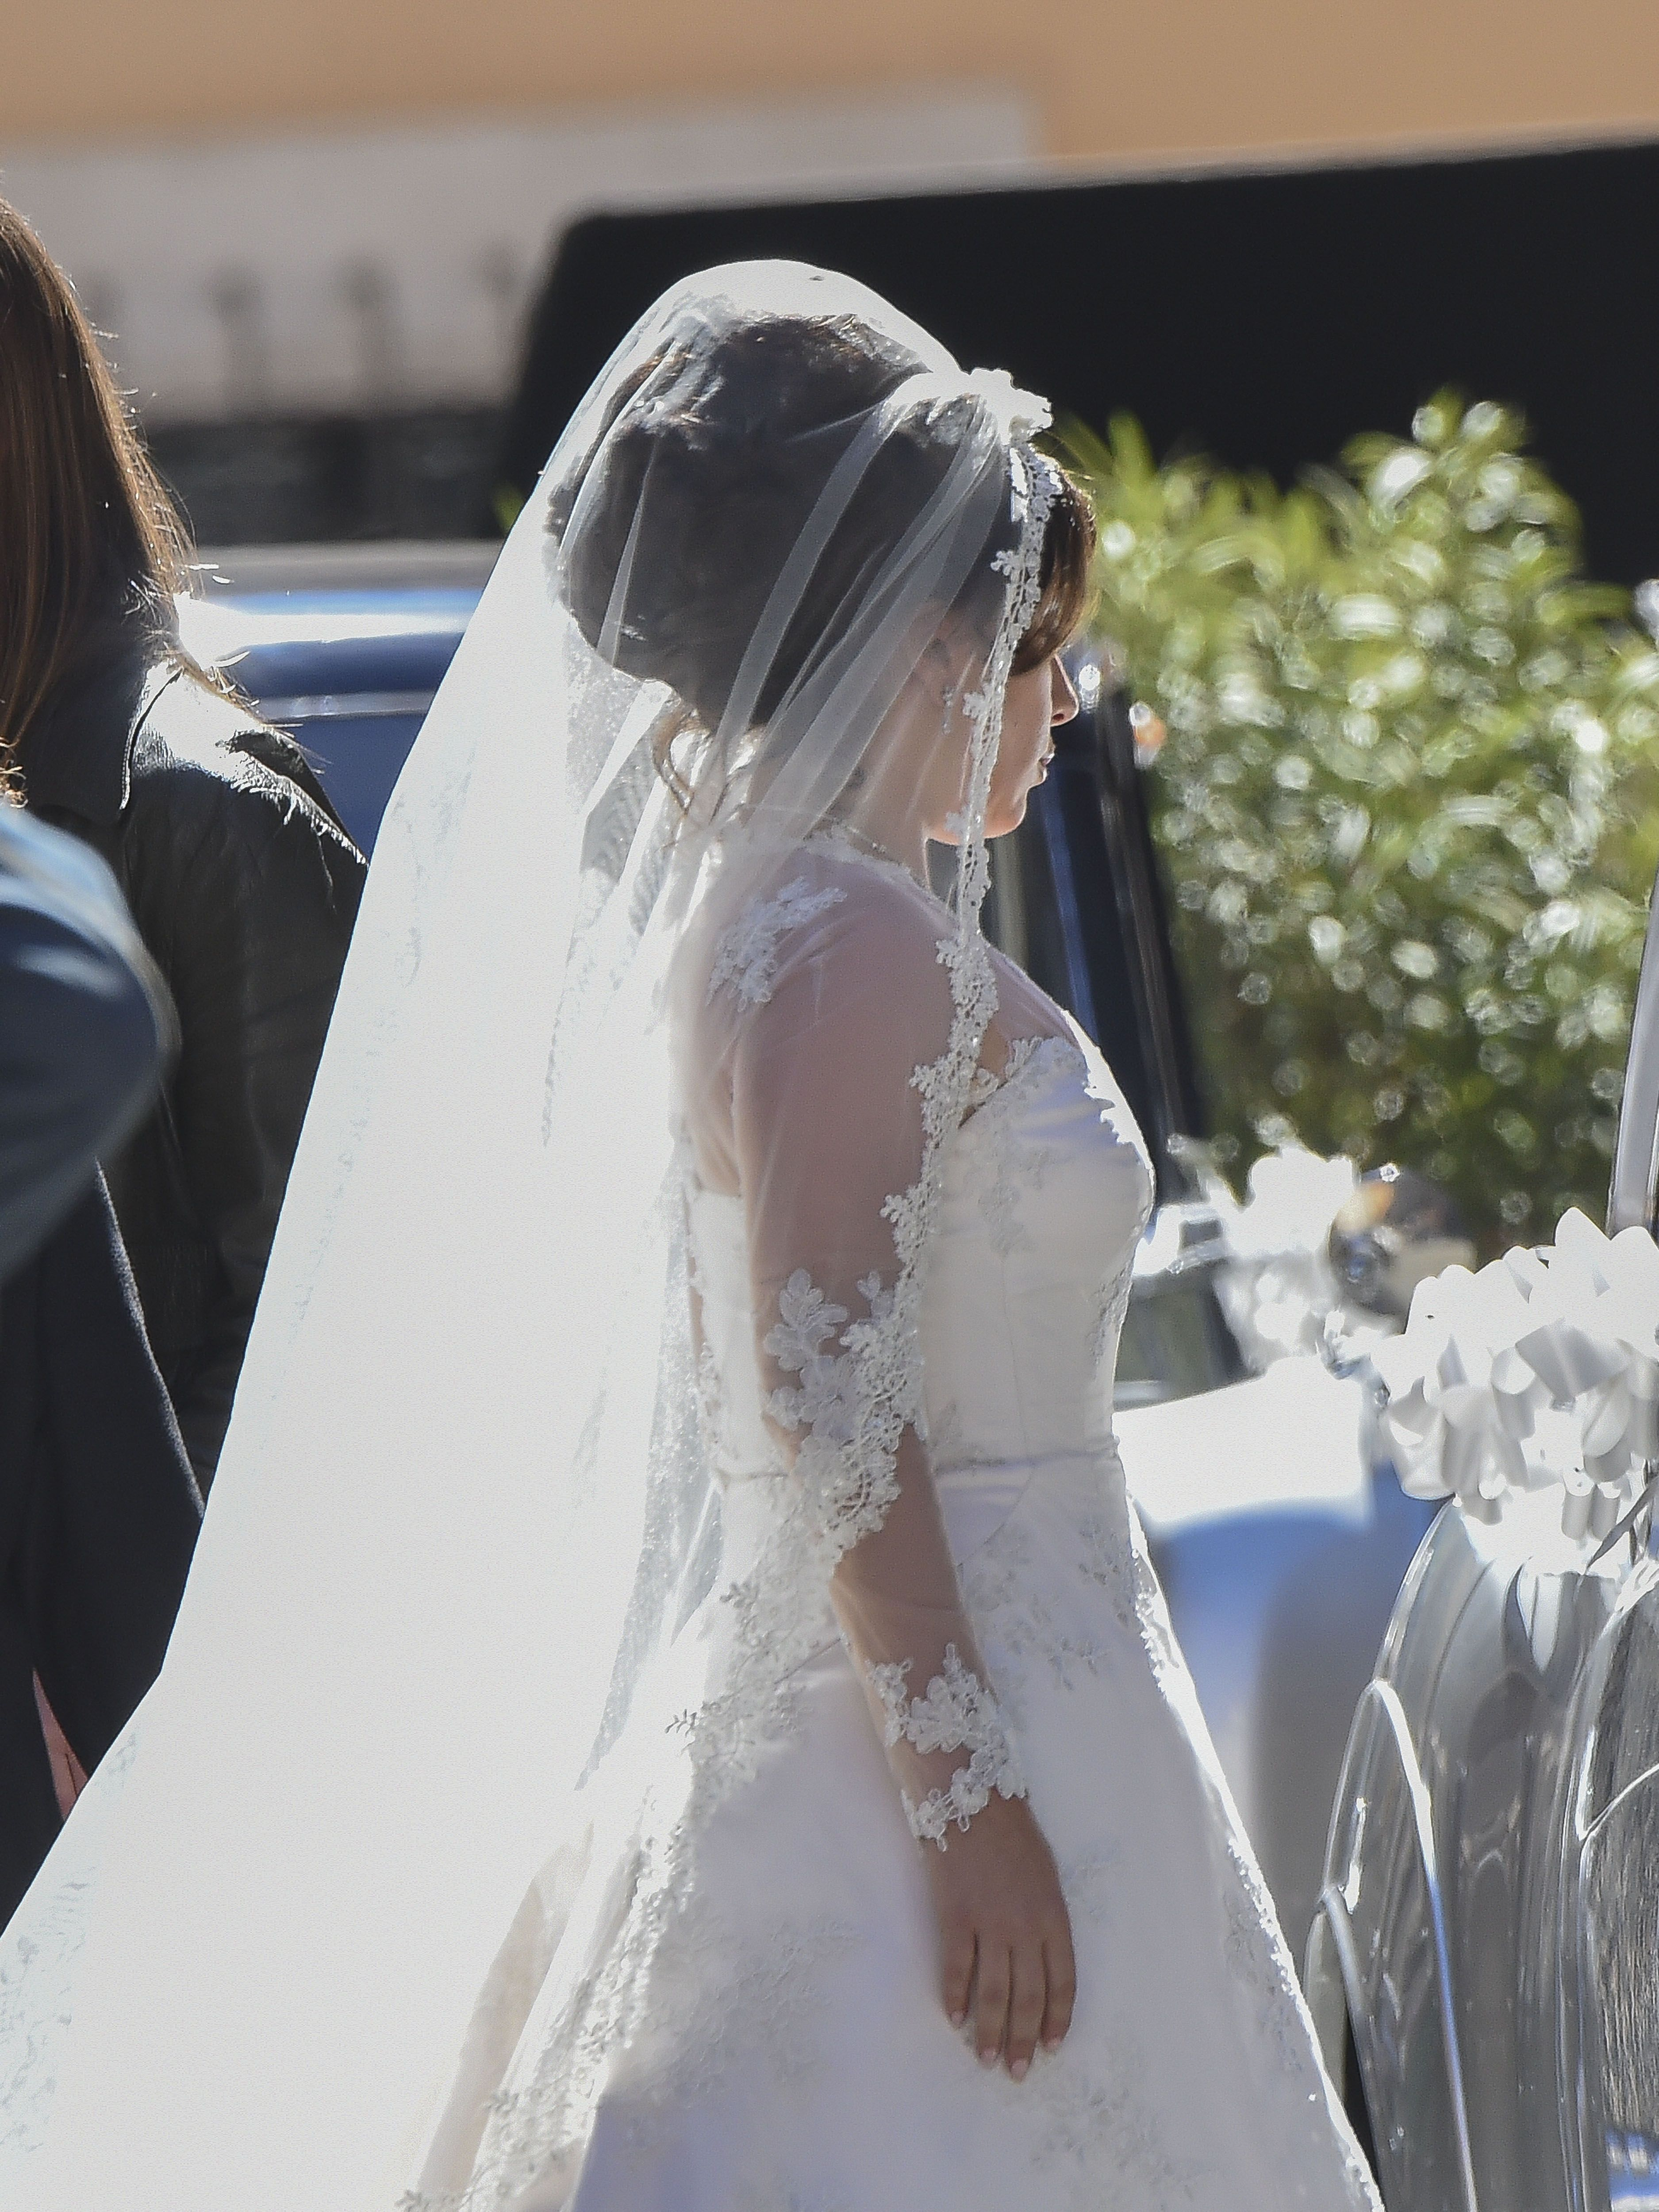 Lady Gaga Looks Stunning in a Wedding Dress While Filming 'House of Gucci'